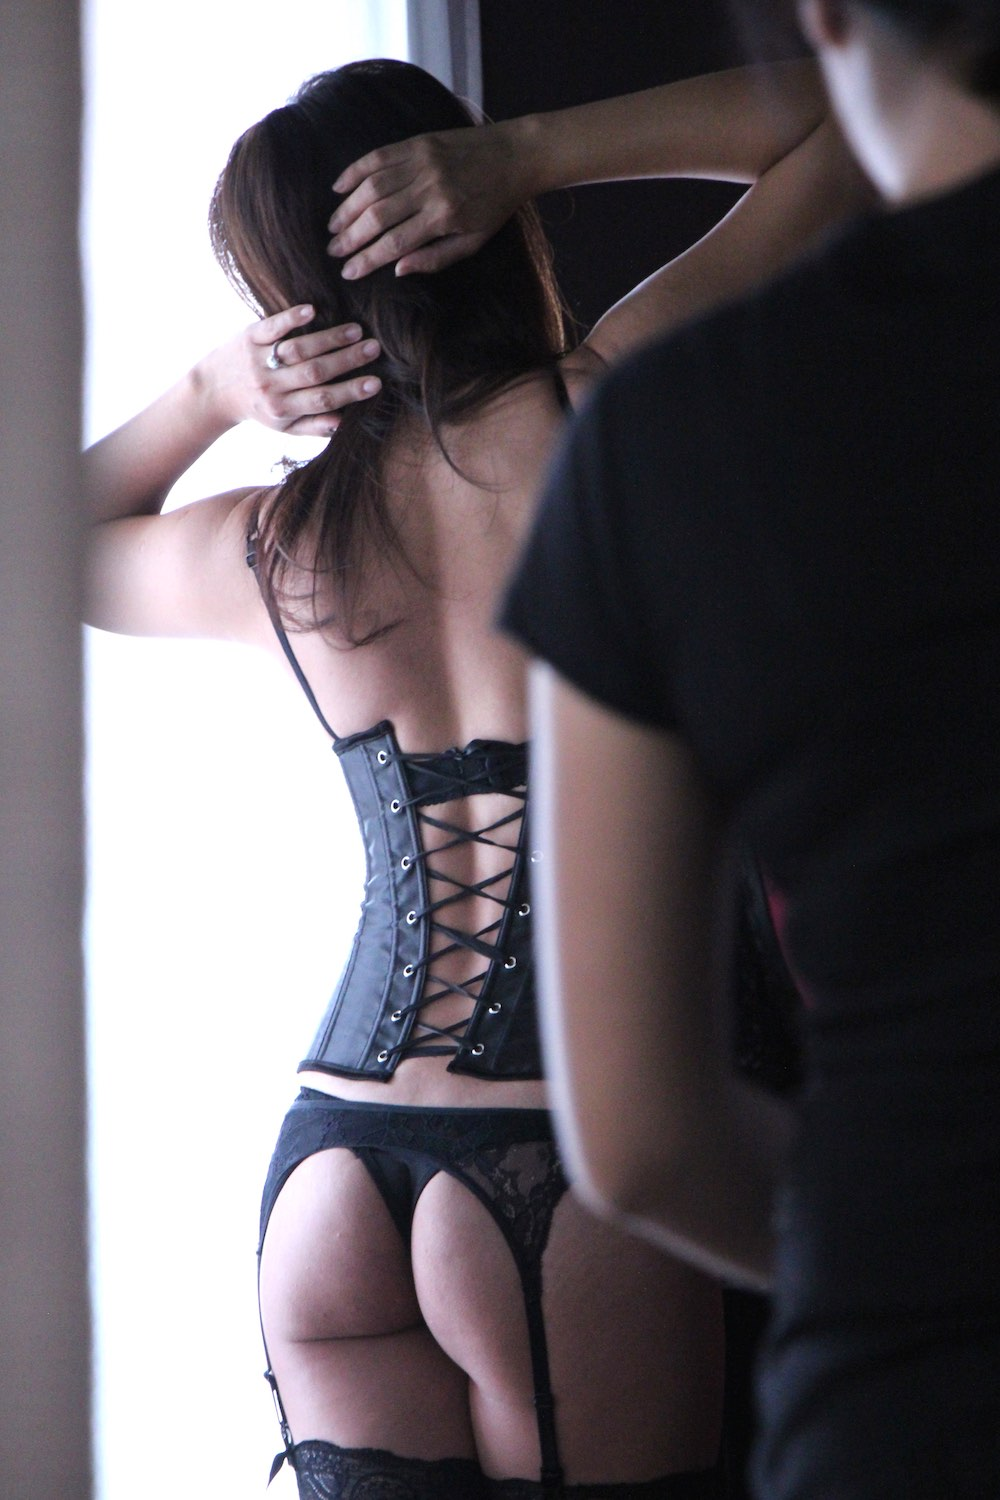 Stylish, erotic pictures |curlytraveller.com